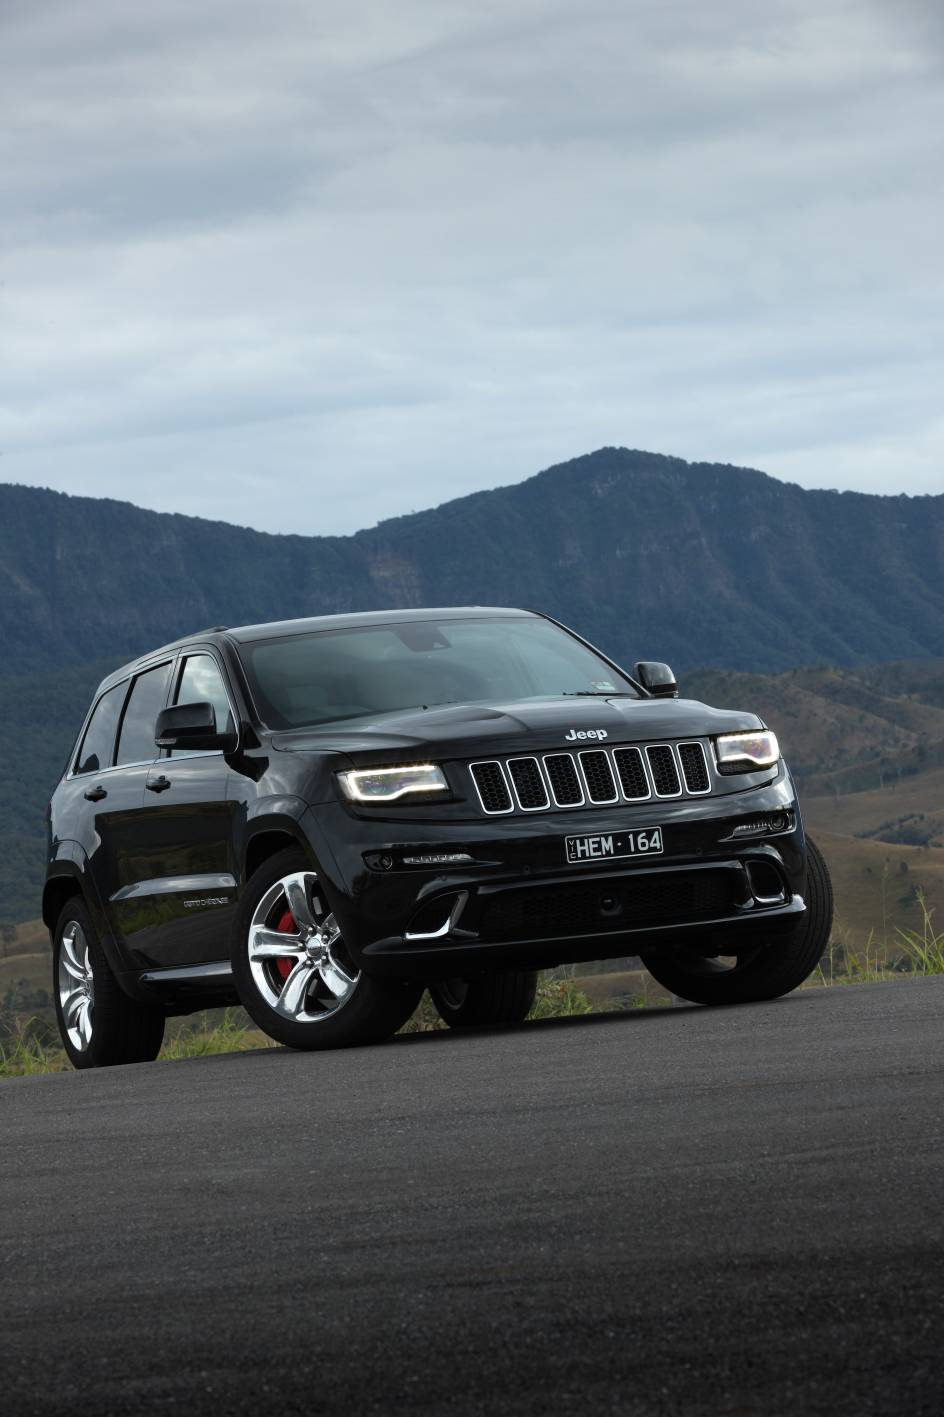 2014 Jeep Grand Cherokee SRT b.jpg